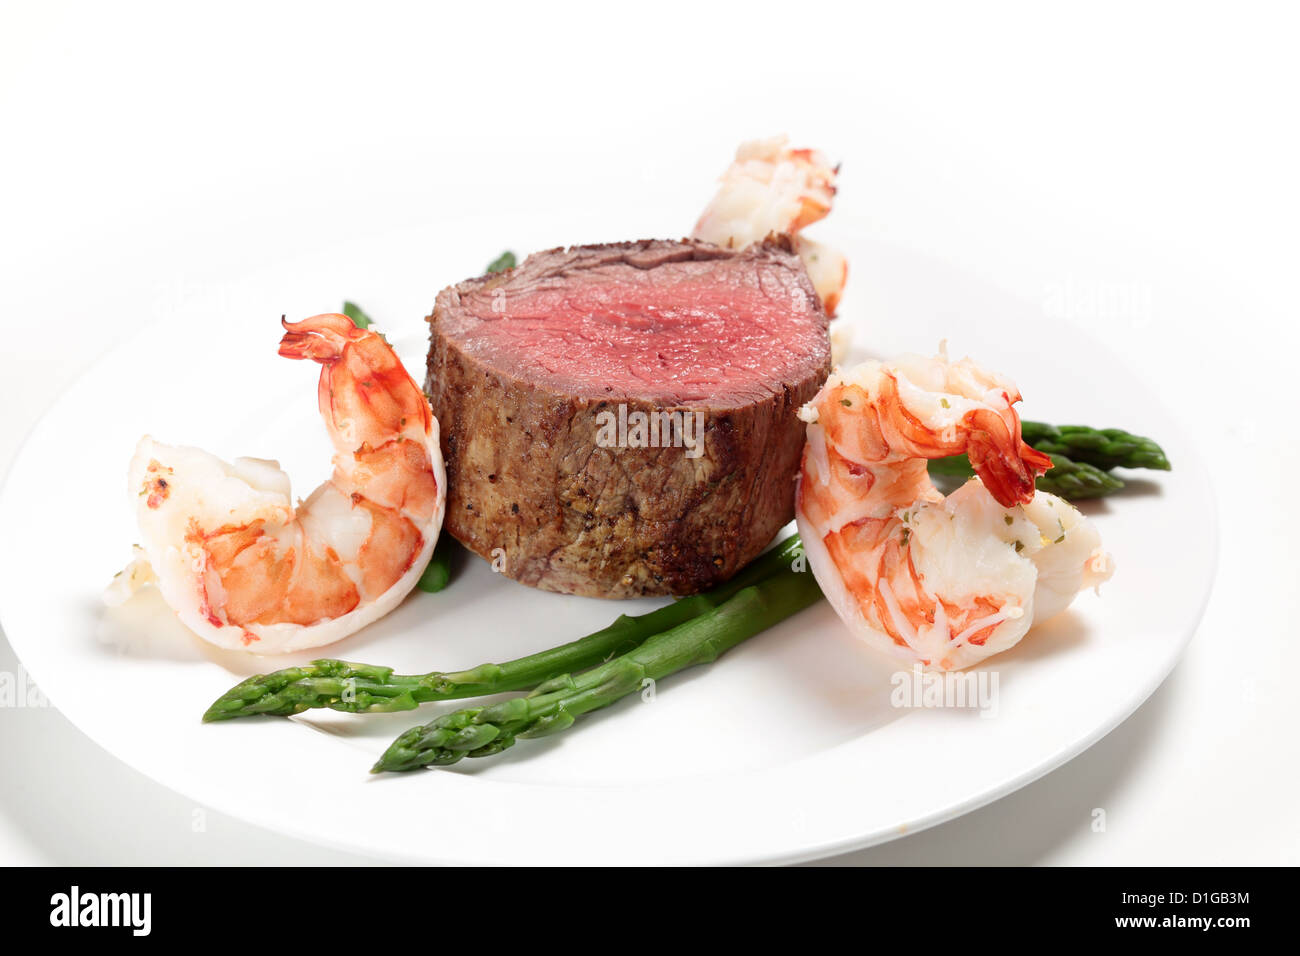 Giant prawns with tenderloin steak and asparagus, a very basic 'surf and turf' meal - Stock Image